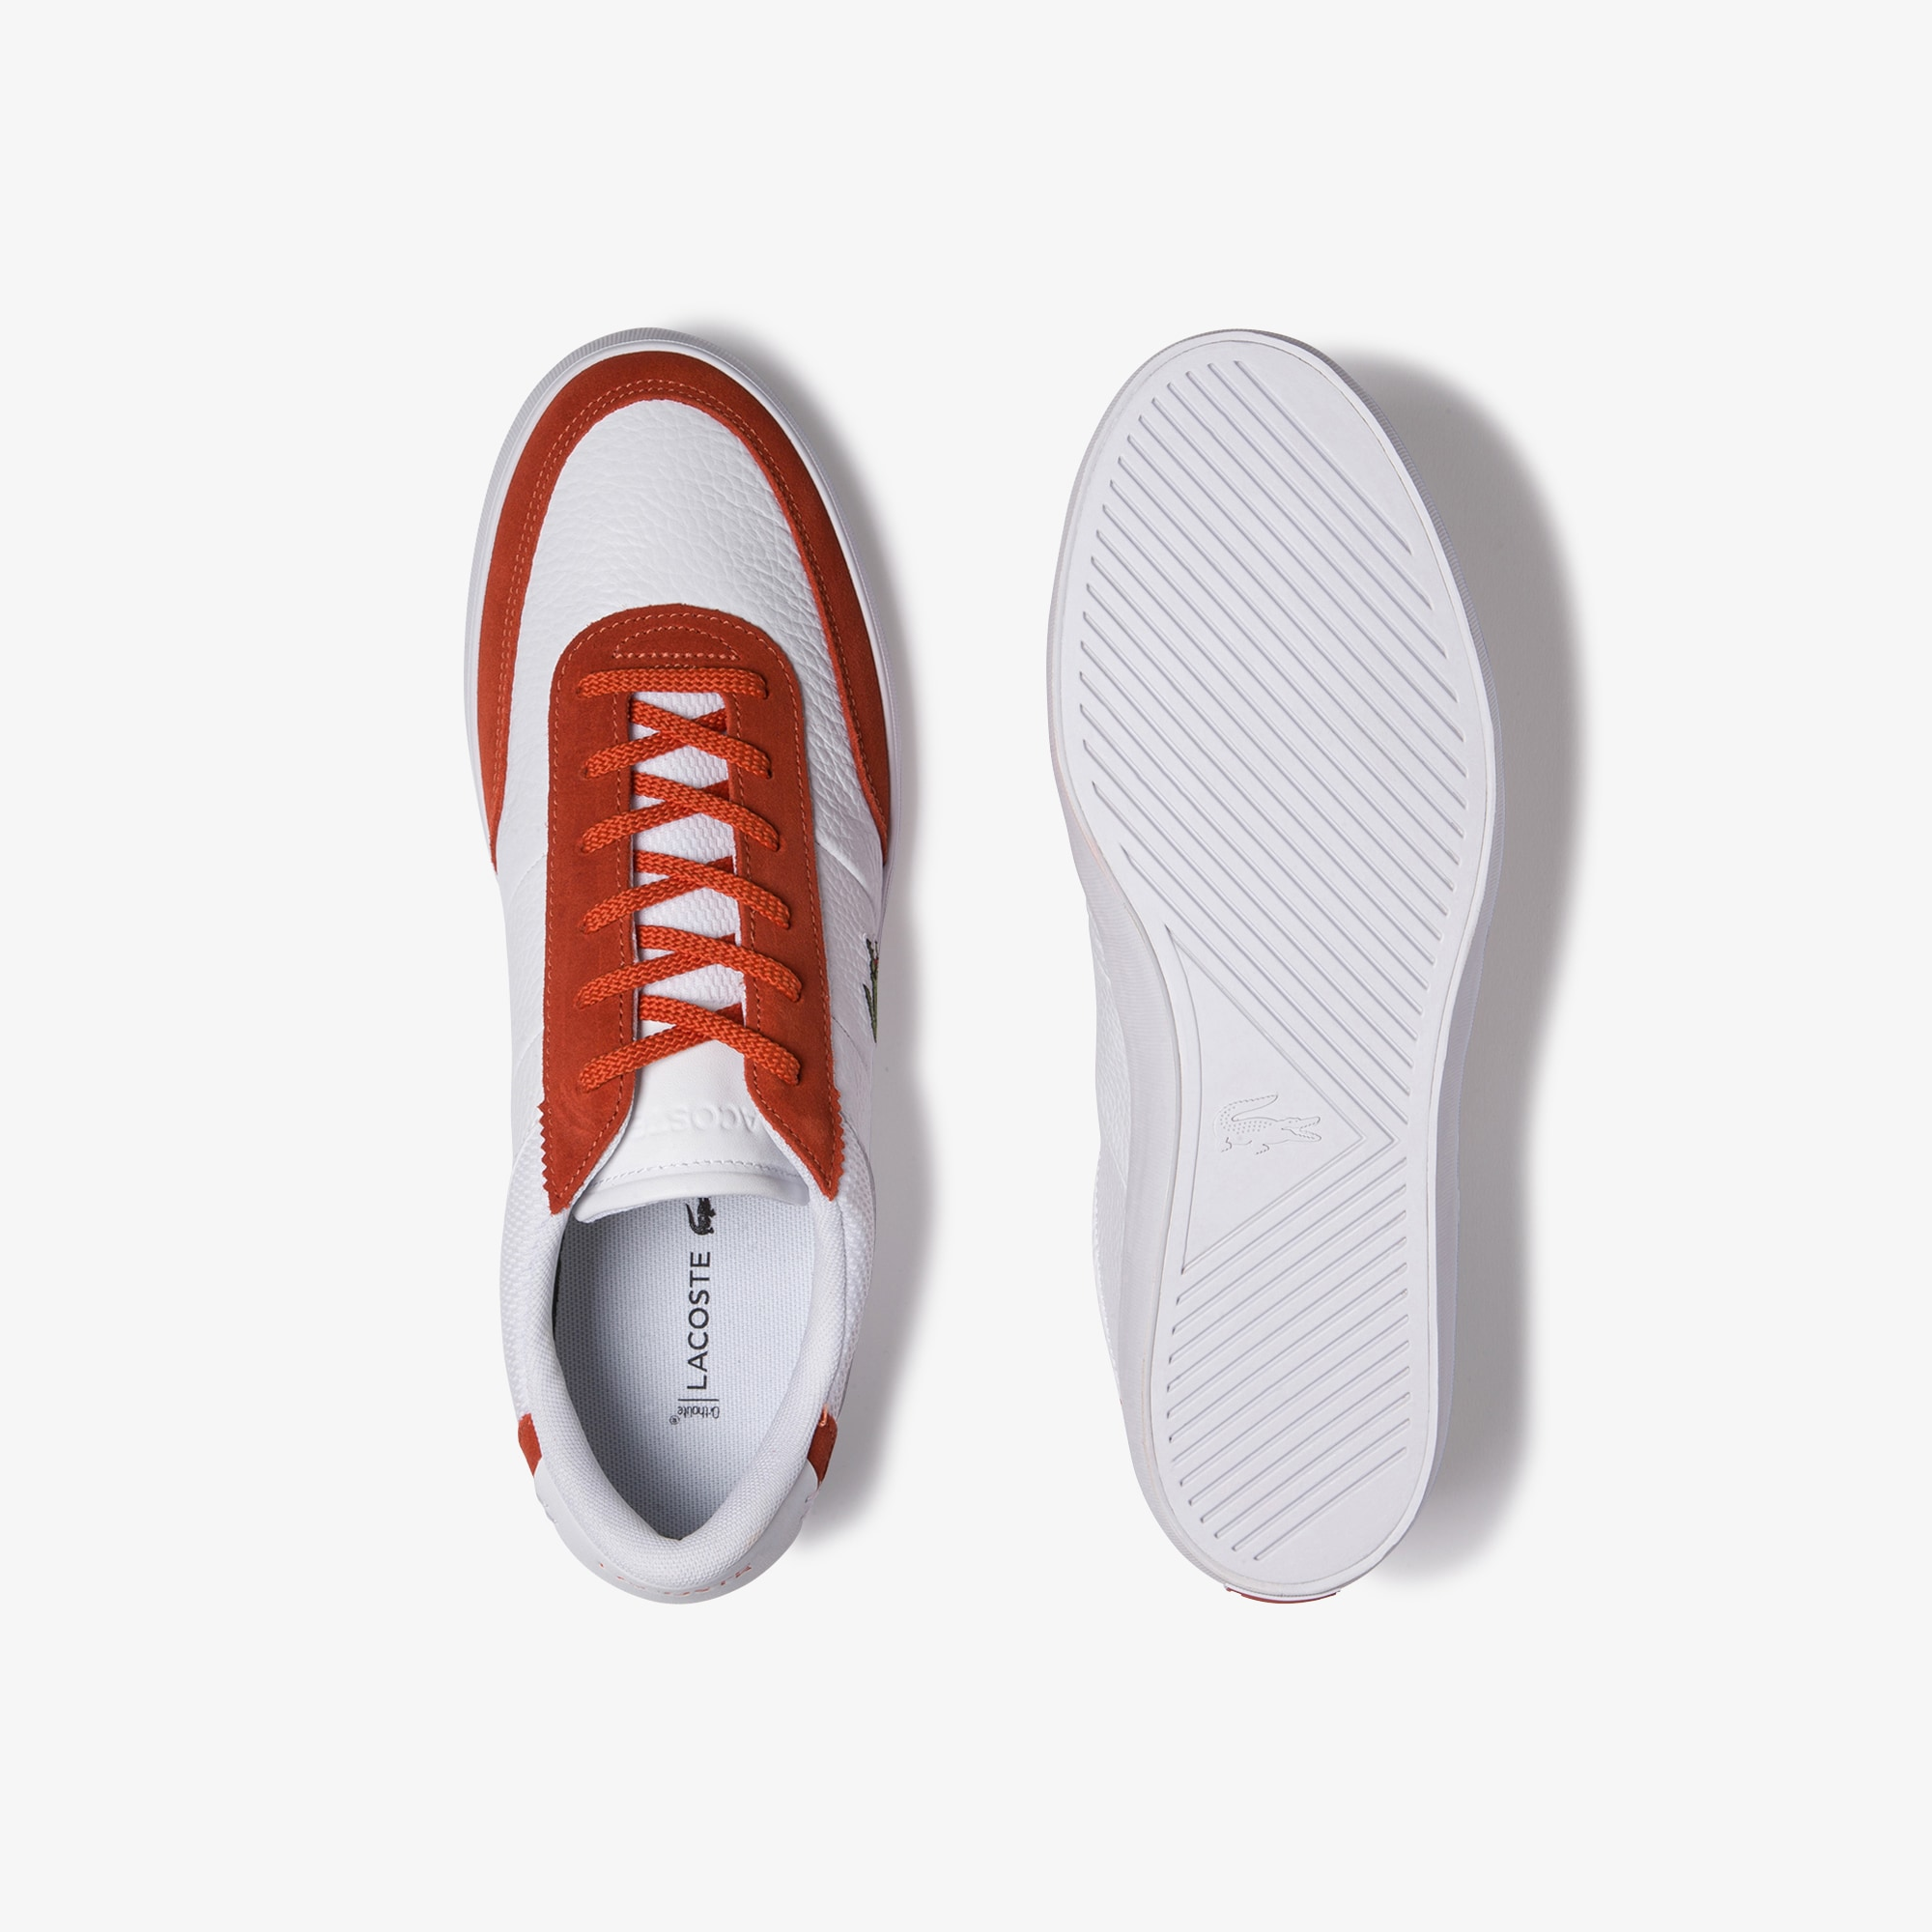 Sneakers da uomo in pelle e materiale sintetico Court-Master